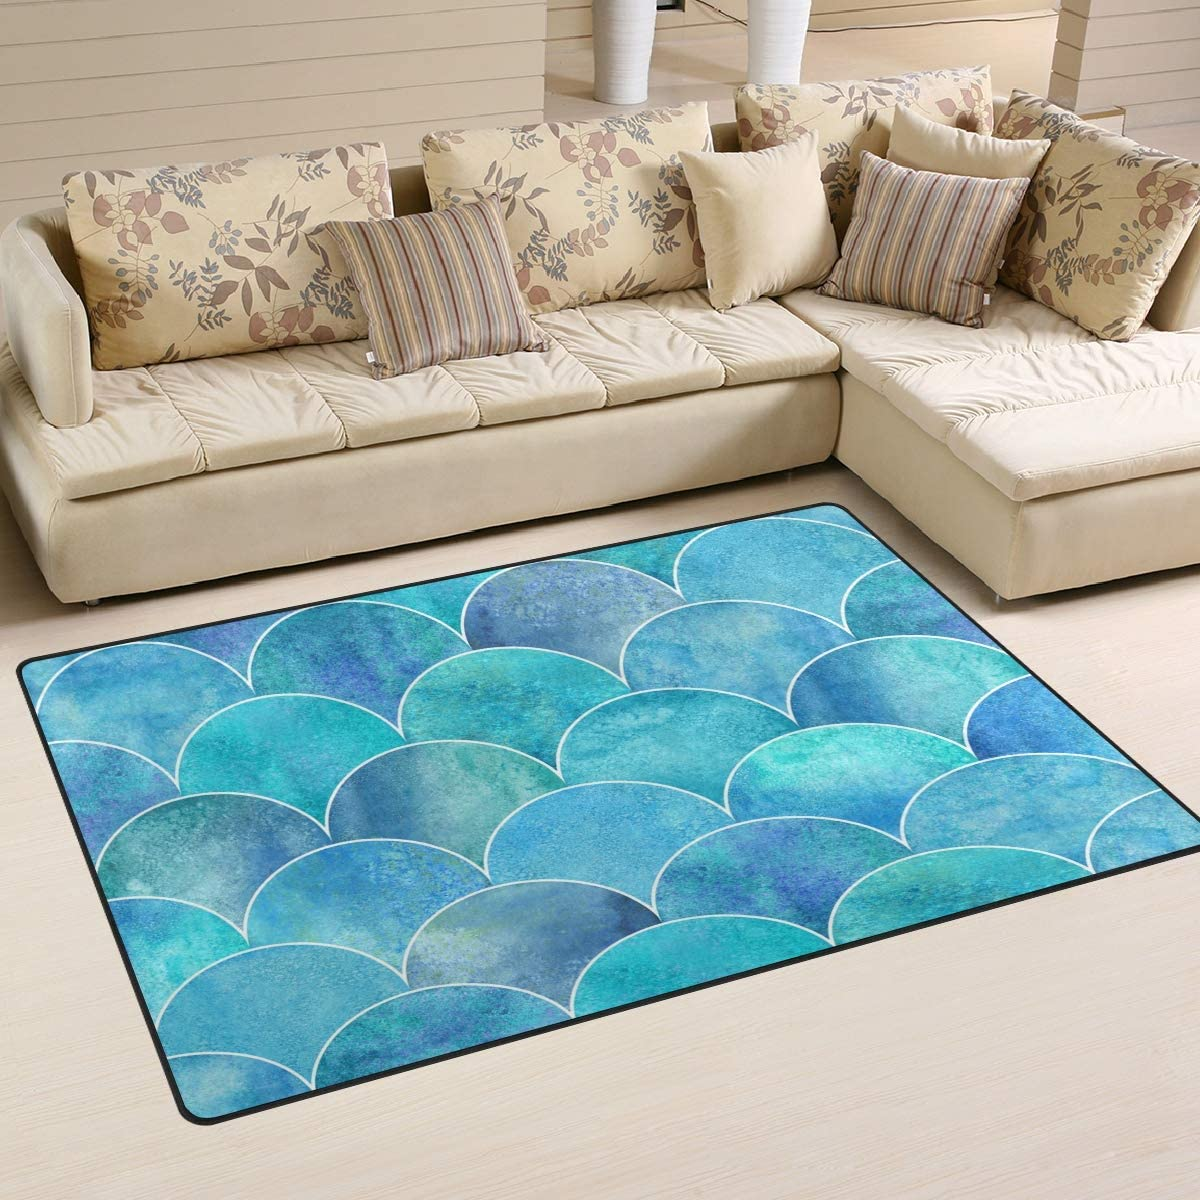 Comfort&products Non-Slip Area Rugs Home Decor, Teal Turquoise Mermaid Scale Floor Mat Living Room Bedroom Carpets Doormats Multi-Size